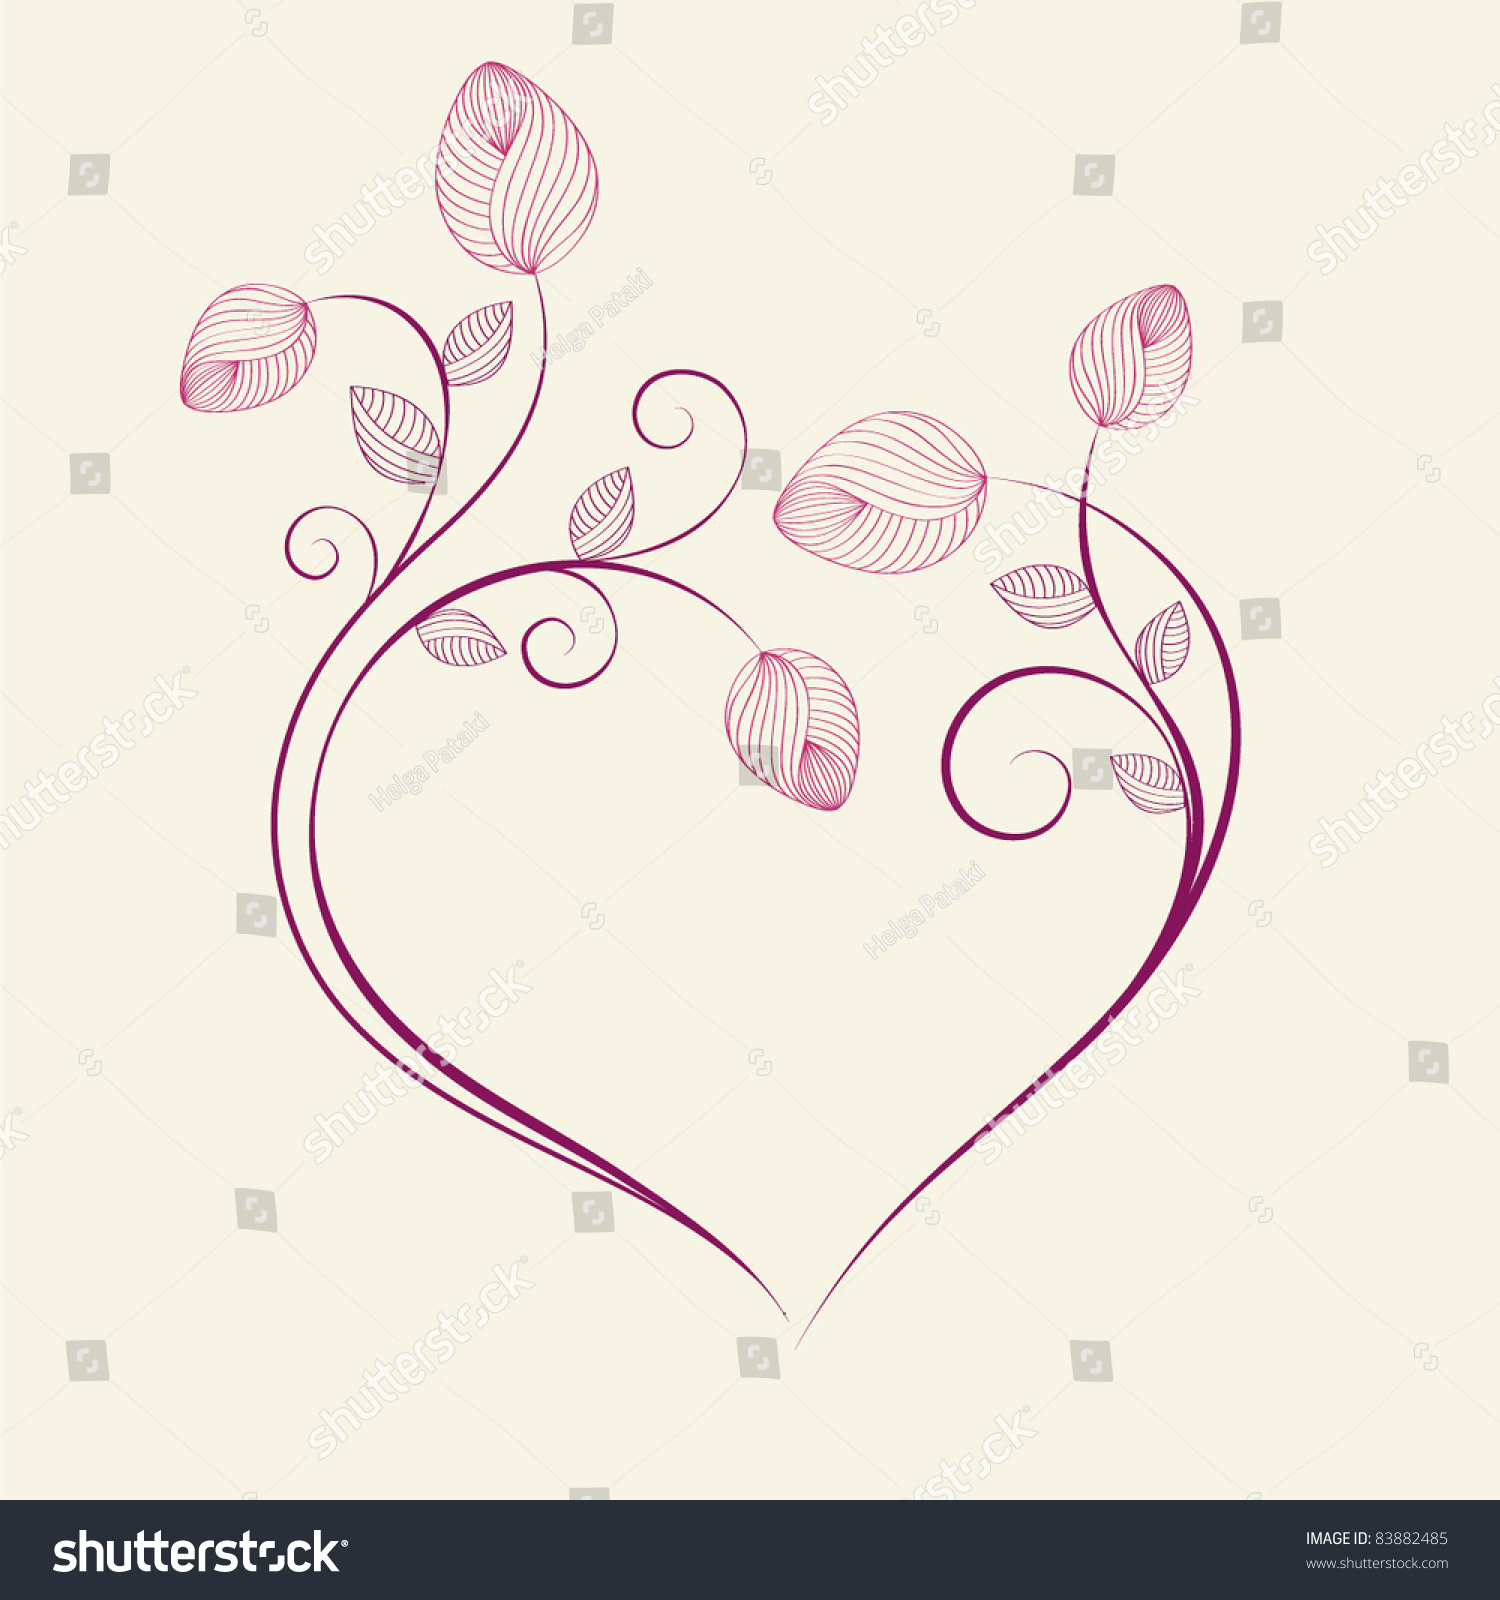 Abstract Flower Background With Decoration Elements For: Abstract Floral Background Vector Heart Flower Stock